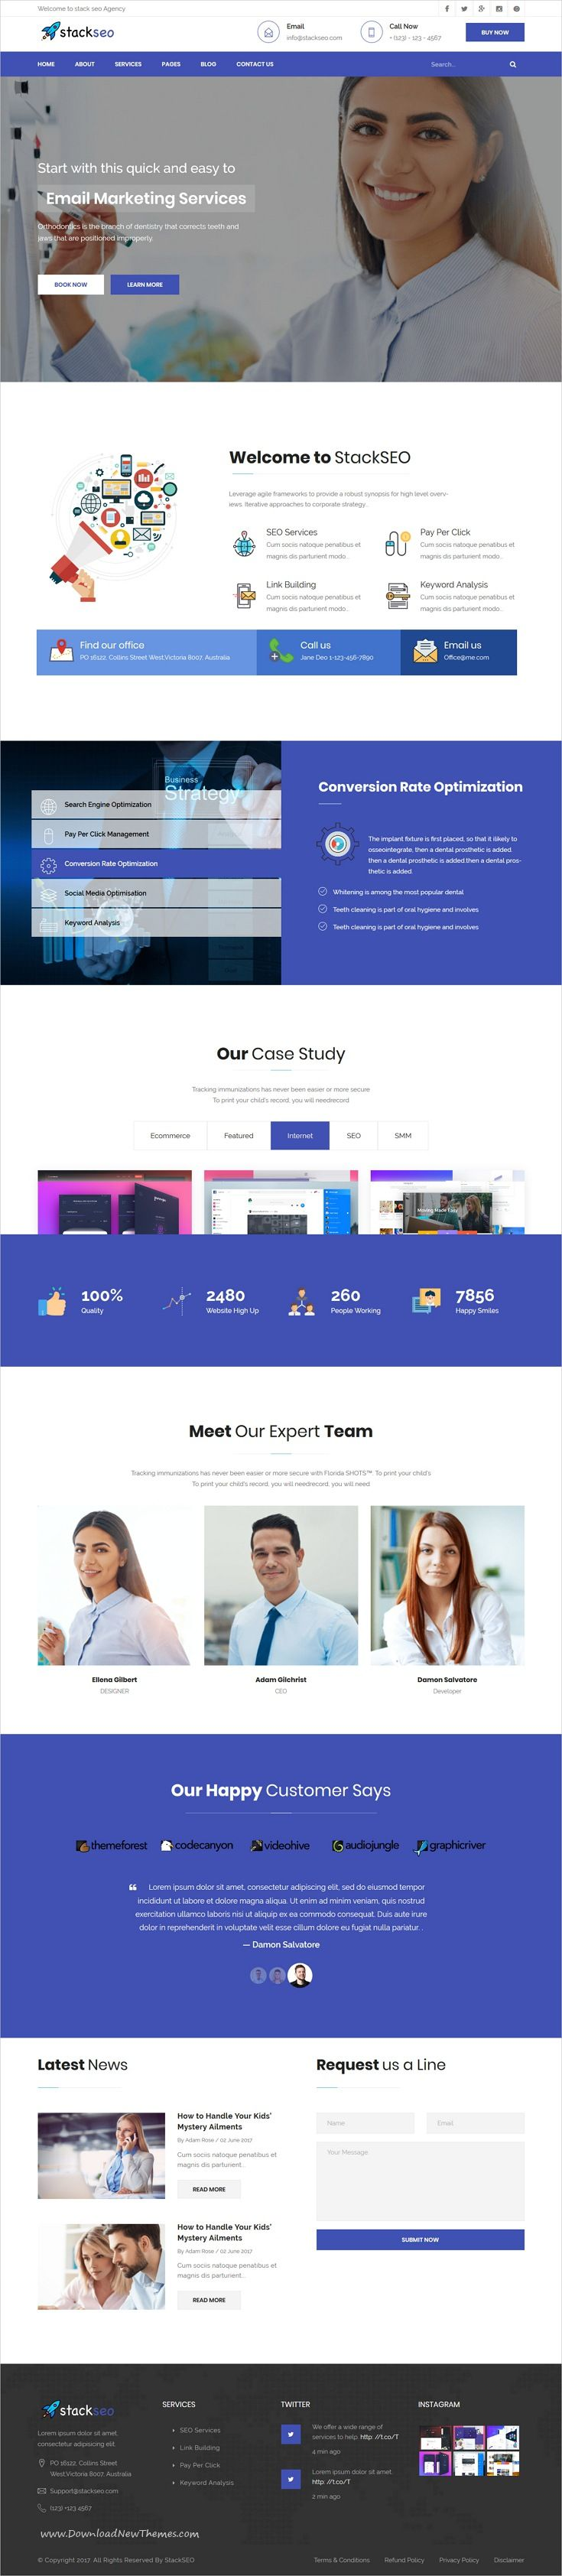 StackSEO – Internet Marketing and SEO Responsive Template